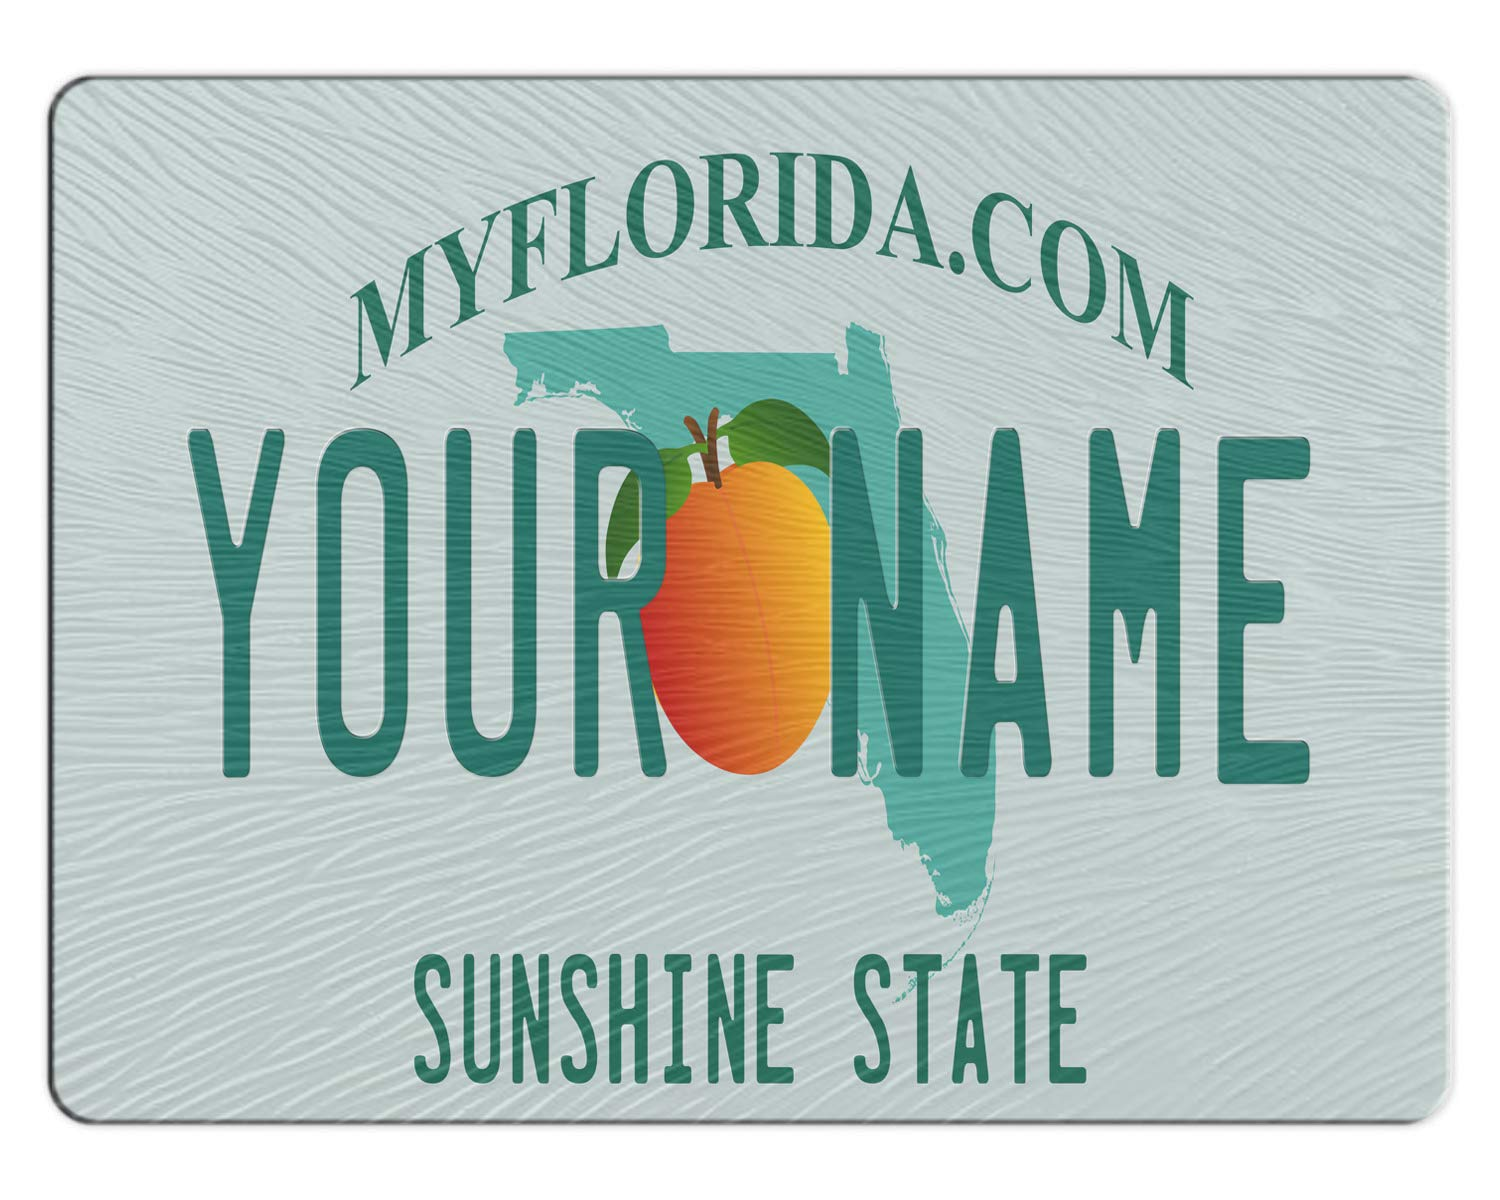 BRGiftShop Personalized Custom Florida State License Plate 11x15 Glass Cutting Board